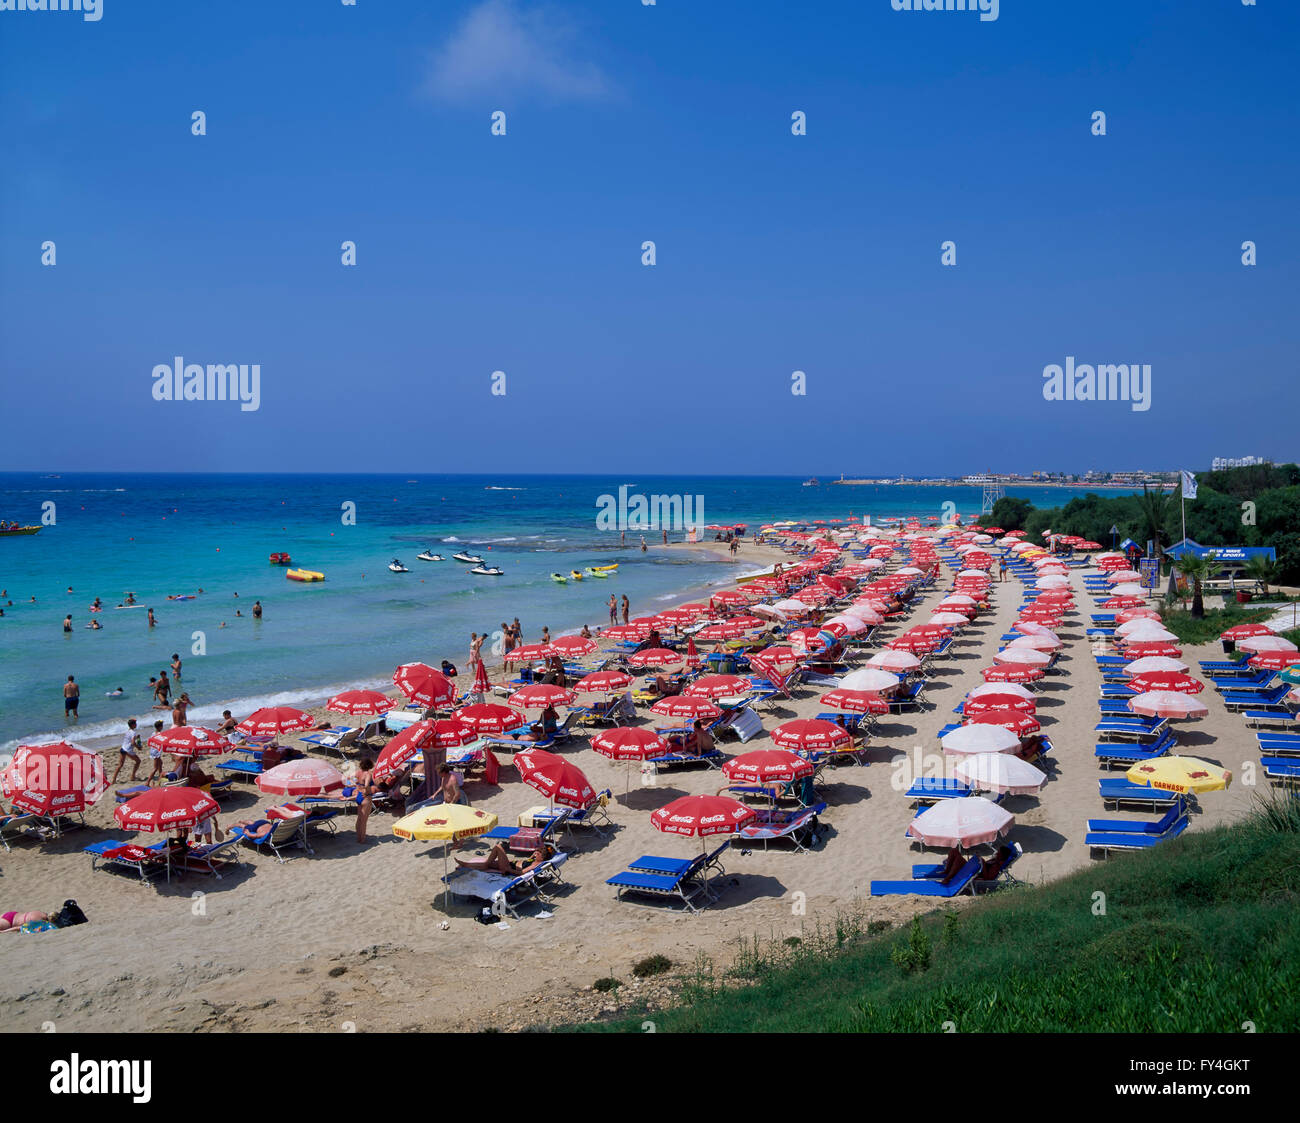 Ayia Napa, beach, South CYPRUS, Europe - Stock Image